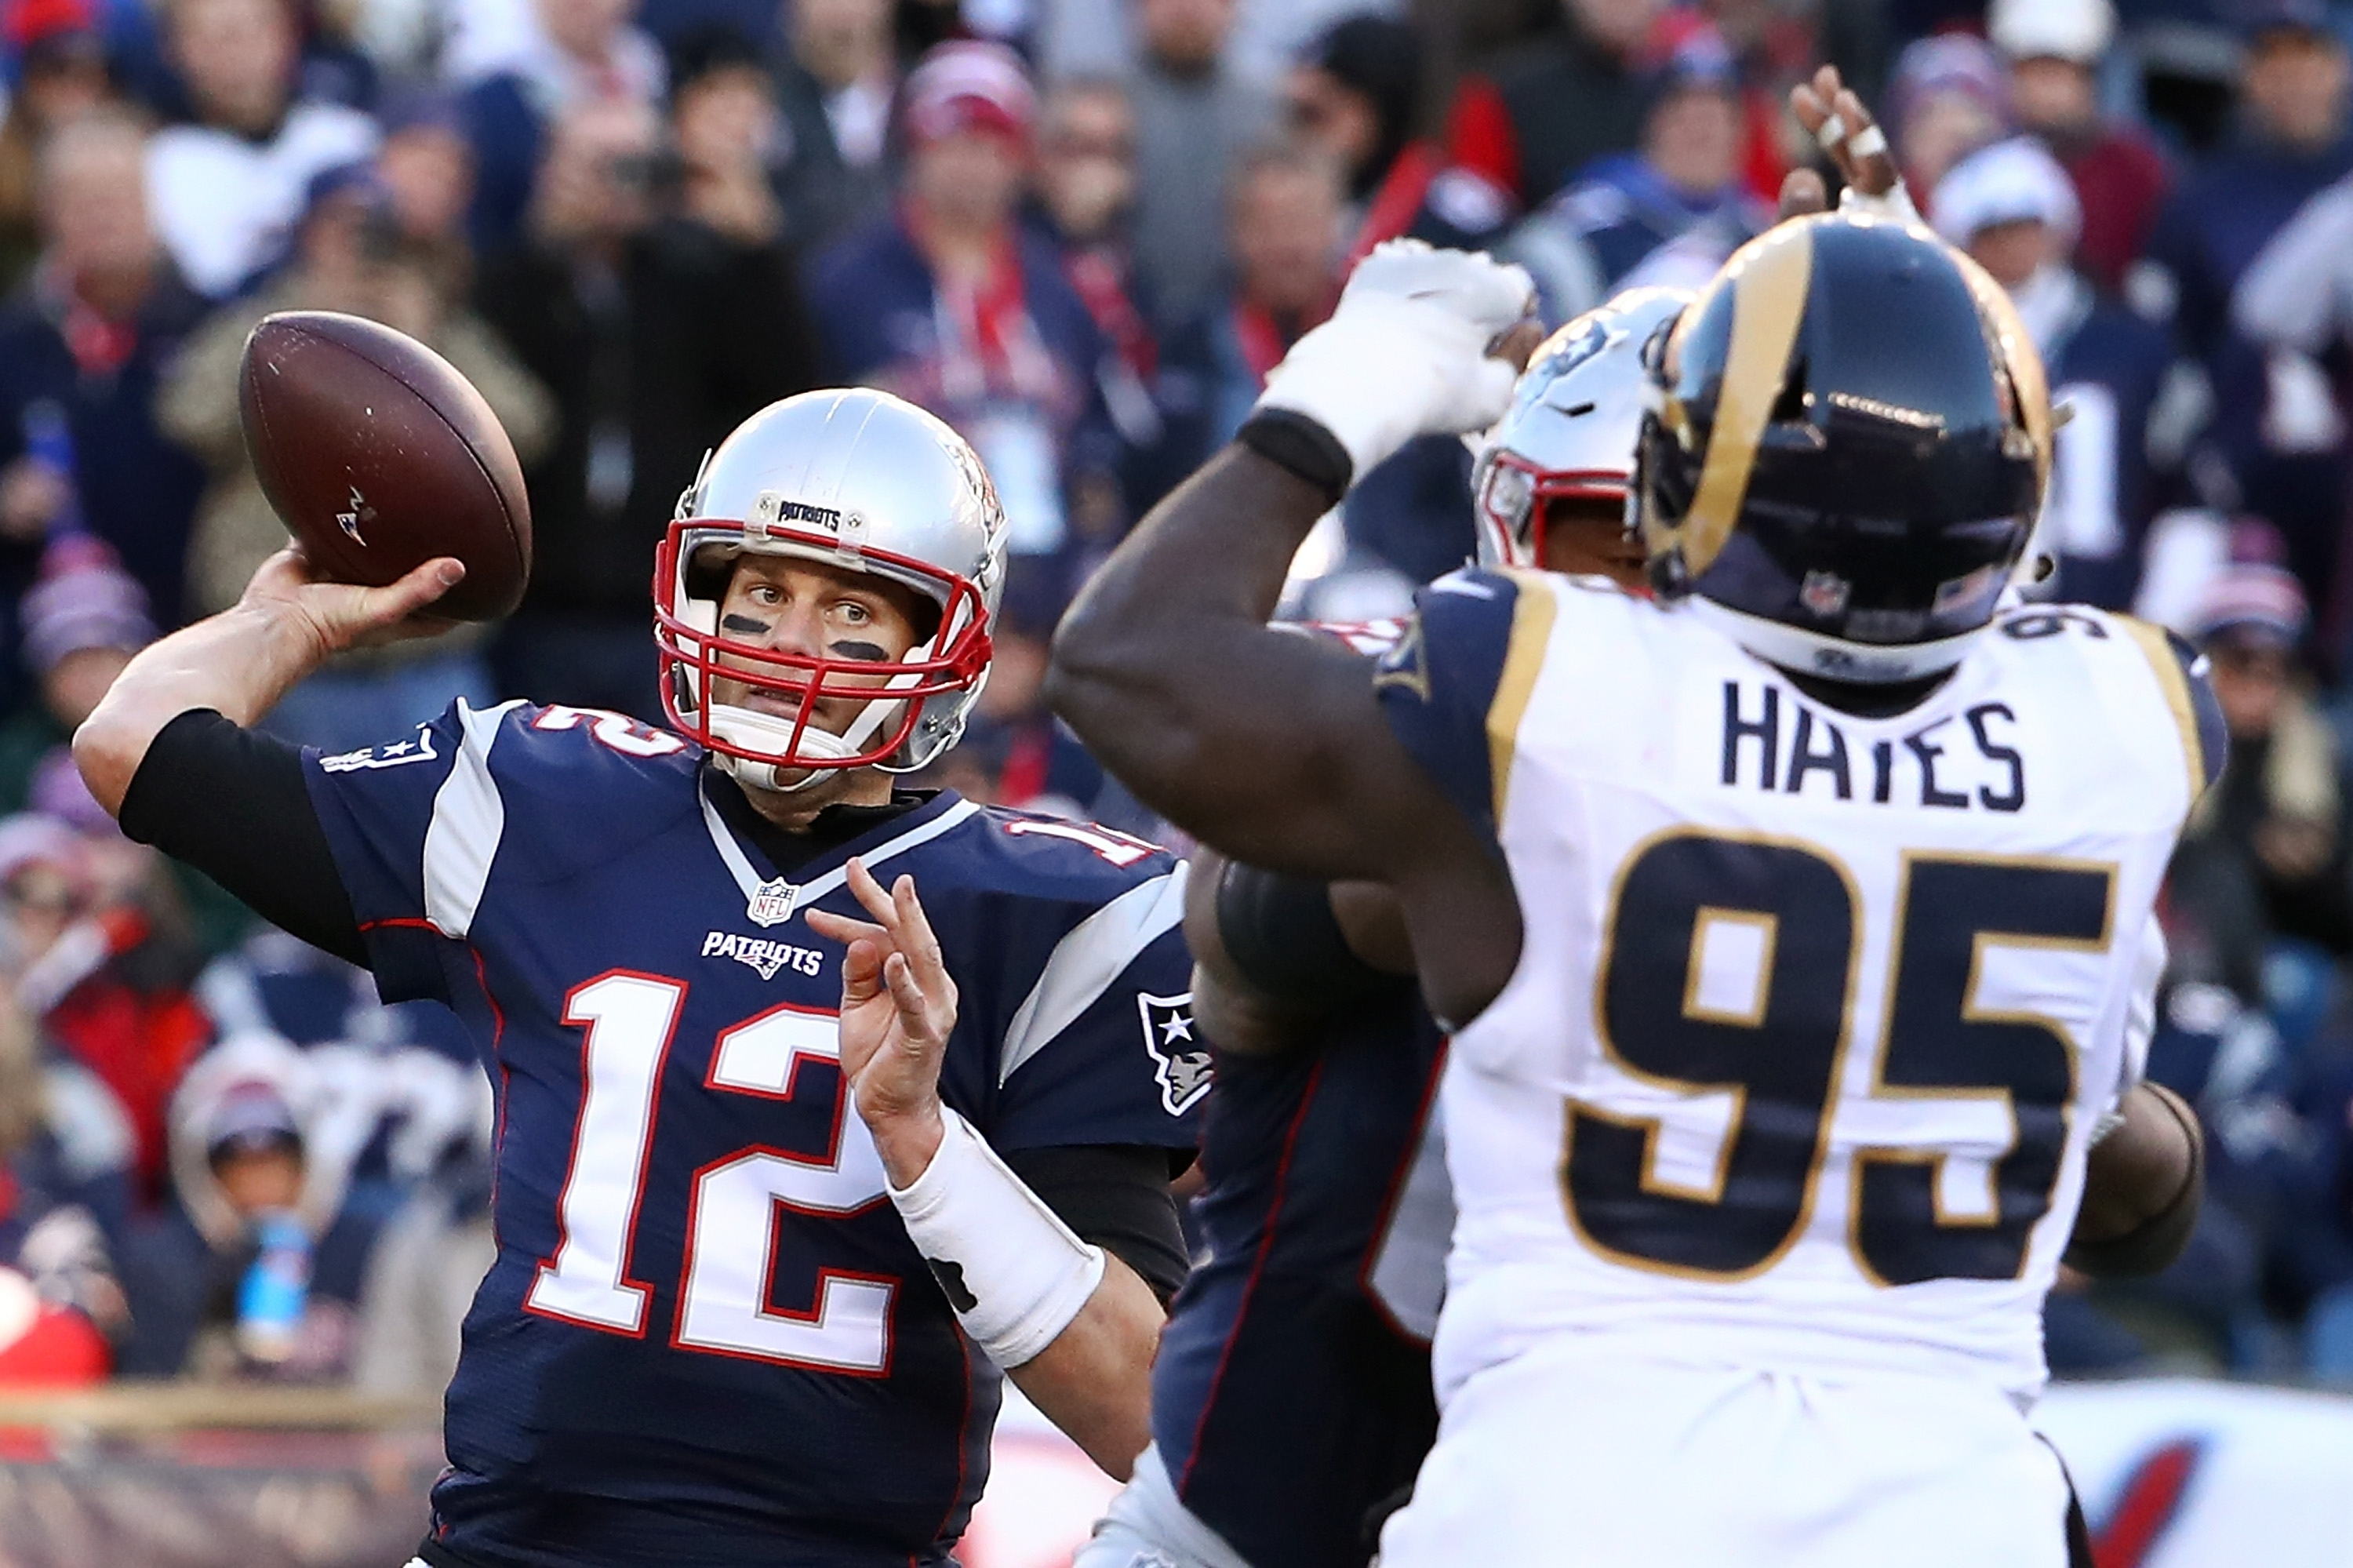 How To Watch Super Bowl 2019 Online Free: Patriots Vs. Rams pertaining to Super Bowl 2019 Online